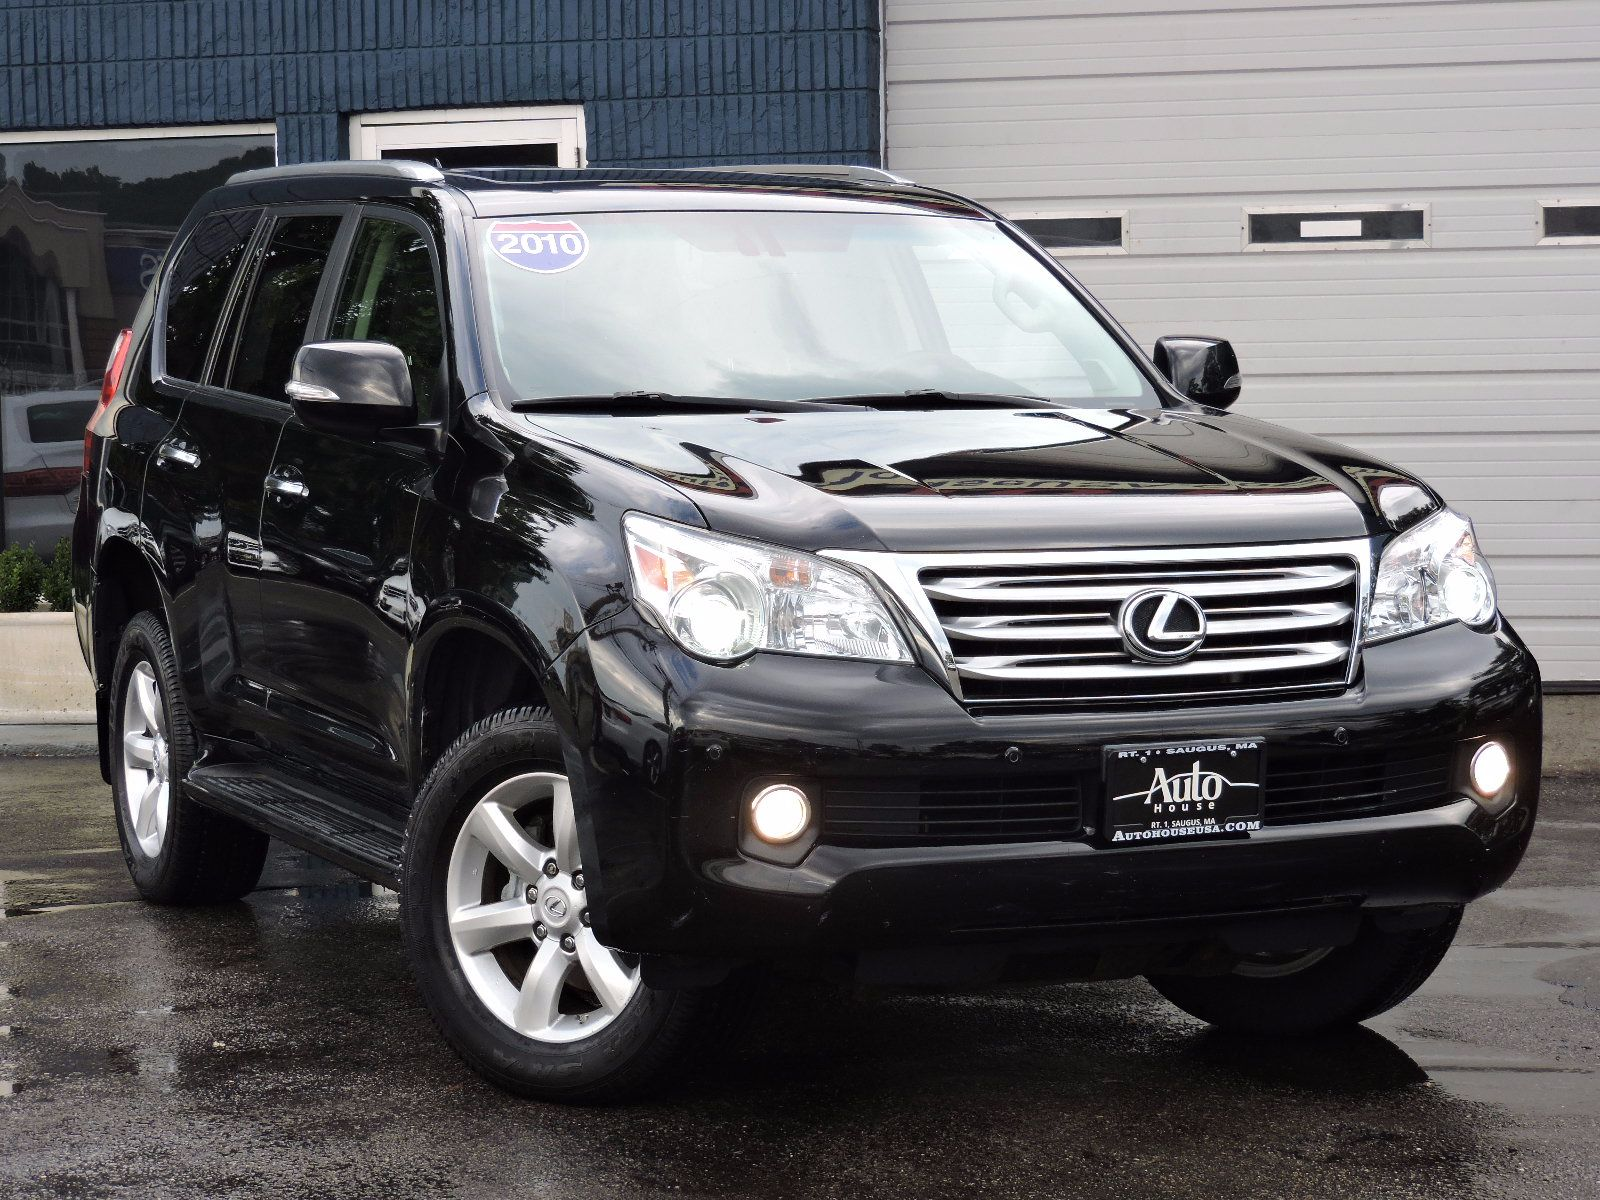 Used 2010 Lexus GX 460 HSE LUX at Auto House USA Saugus